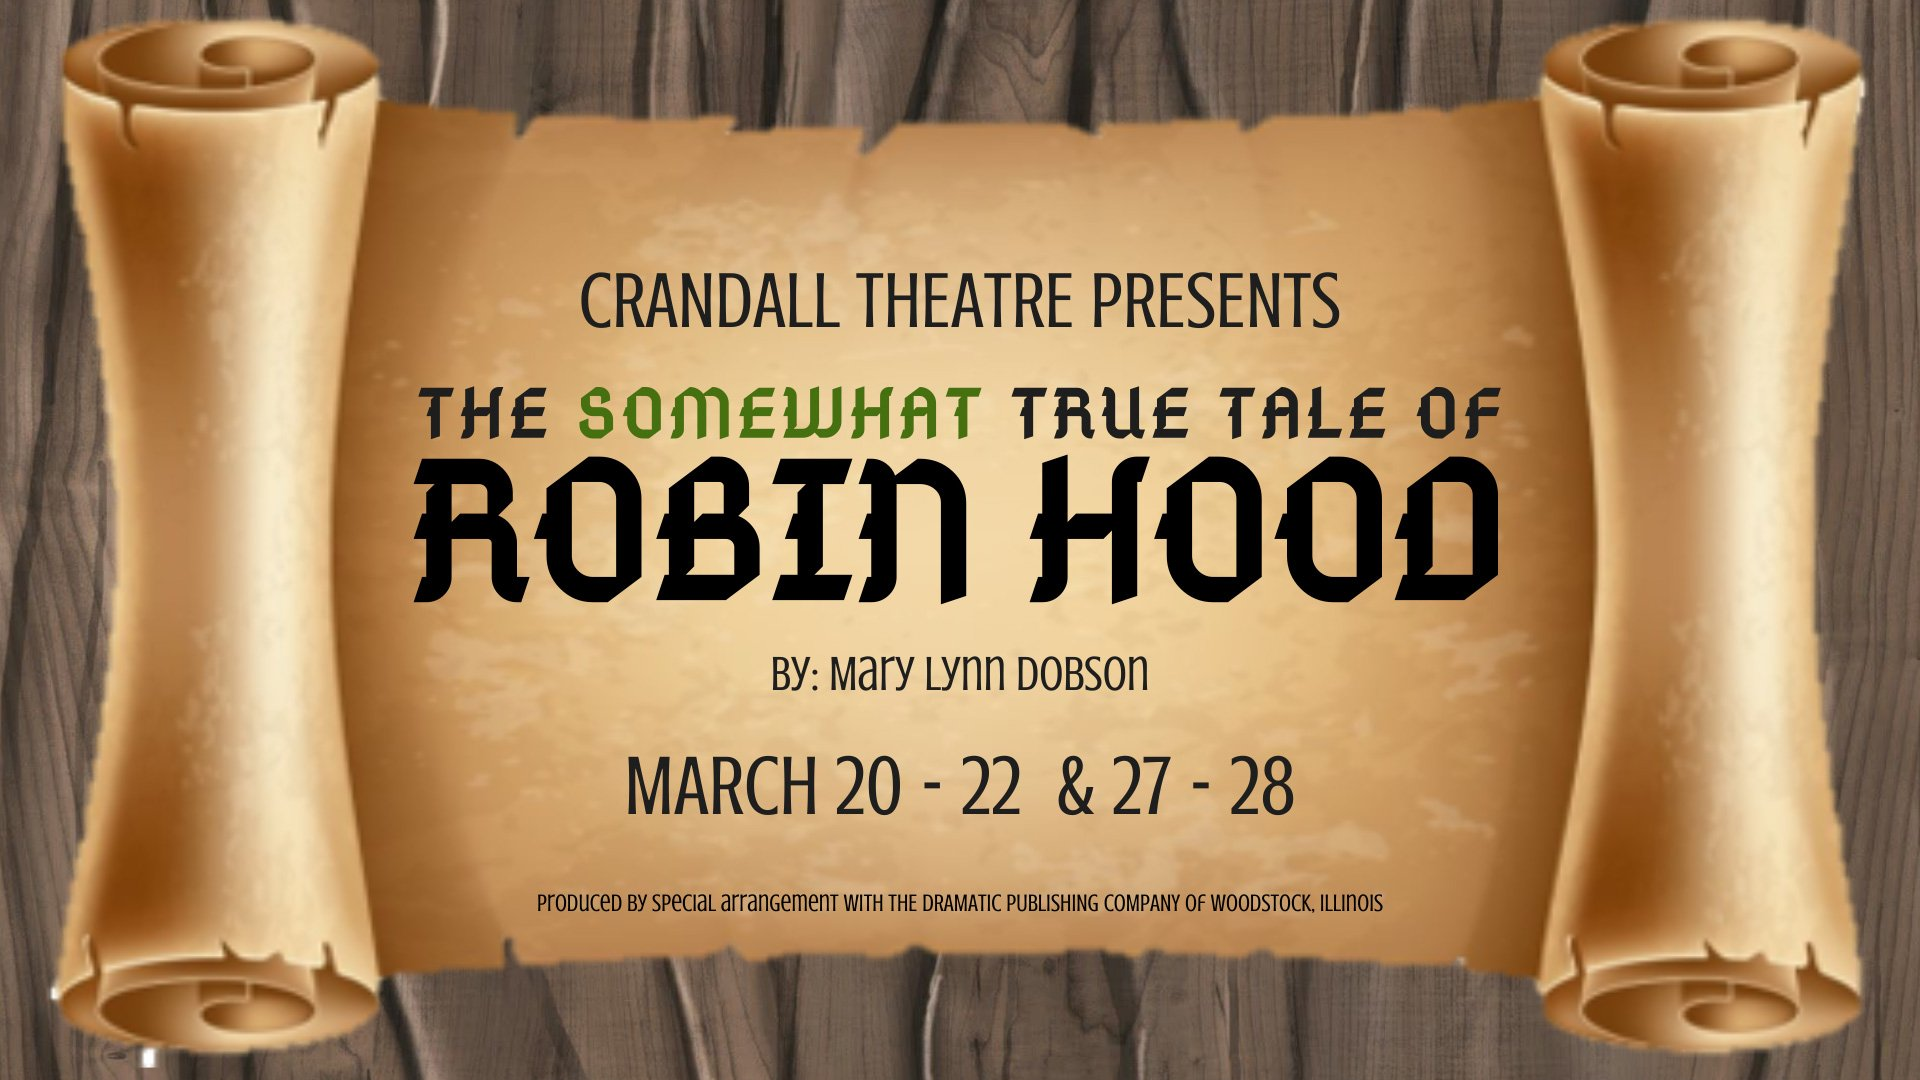 Crandall Theatre presents: The Somewhat True Tale of Robin Hood by Mary Lynn Dobson, opening March 20, 2020